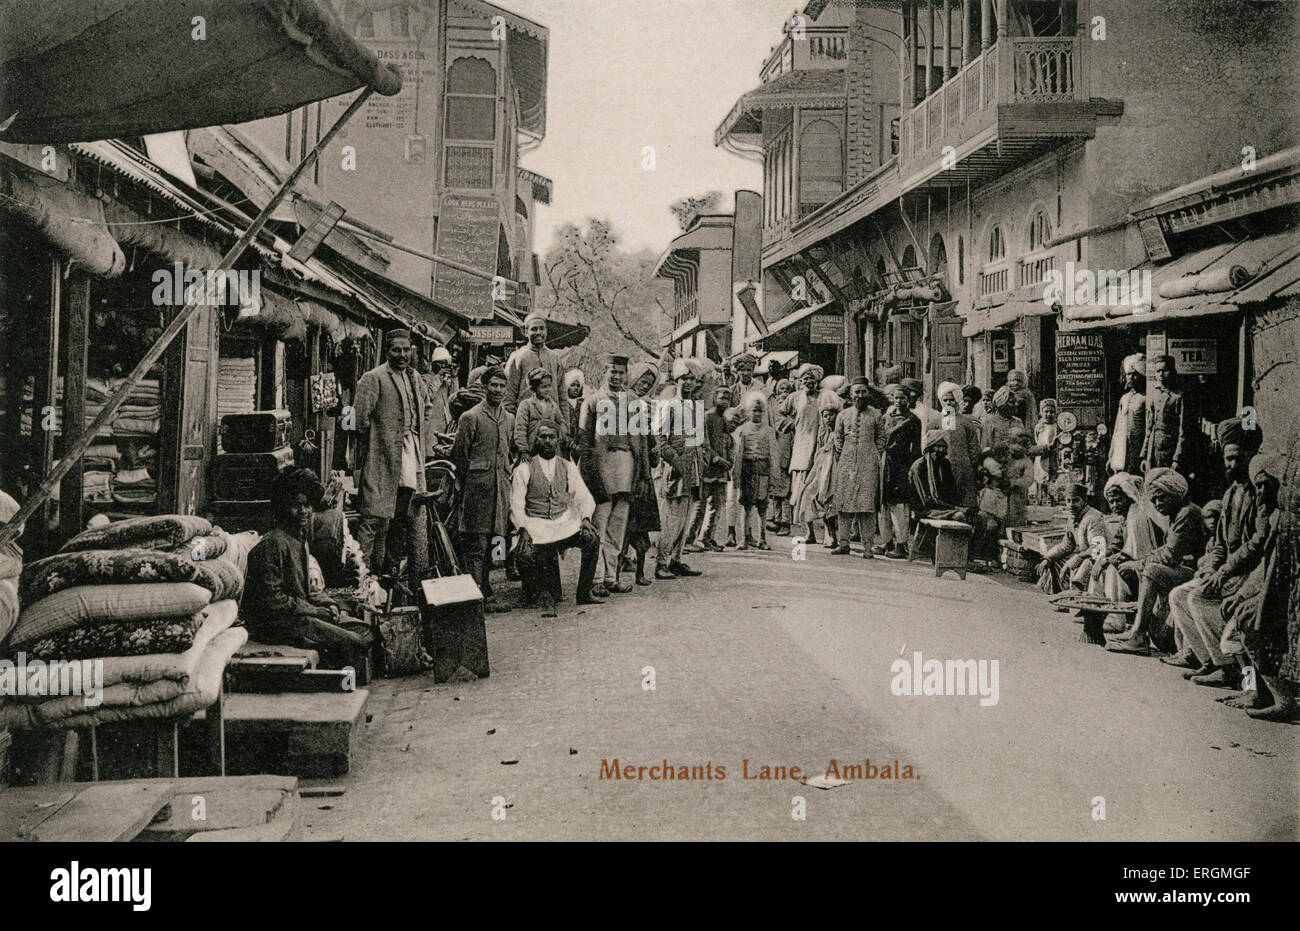 Merchants Lane, Ambala, India. Photograph taken early 20th century. - Stock Image